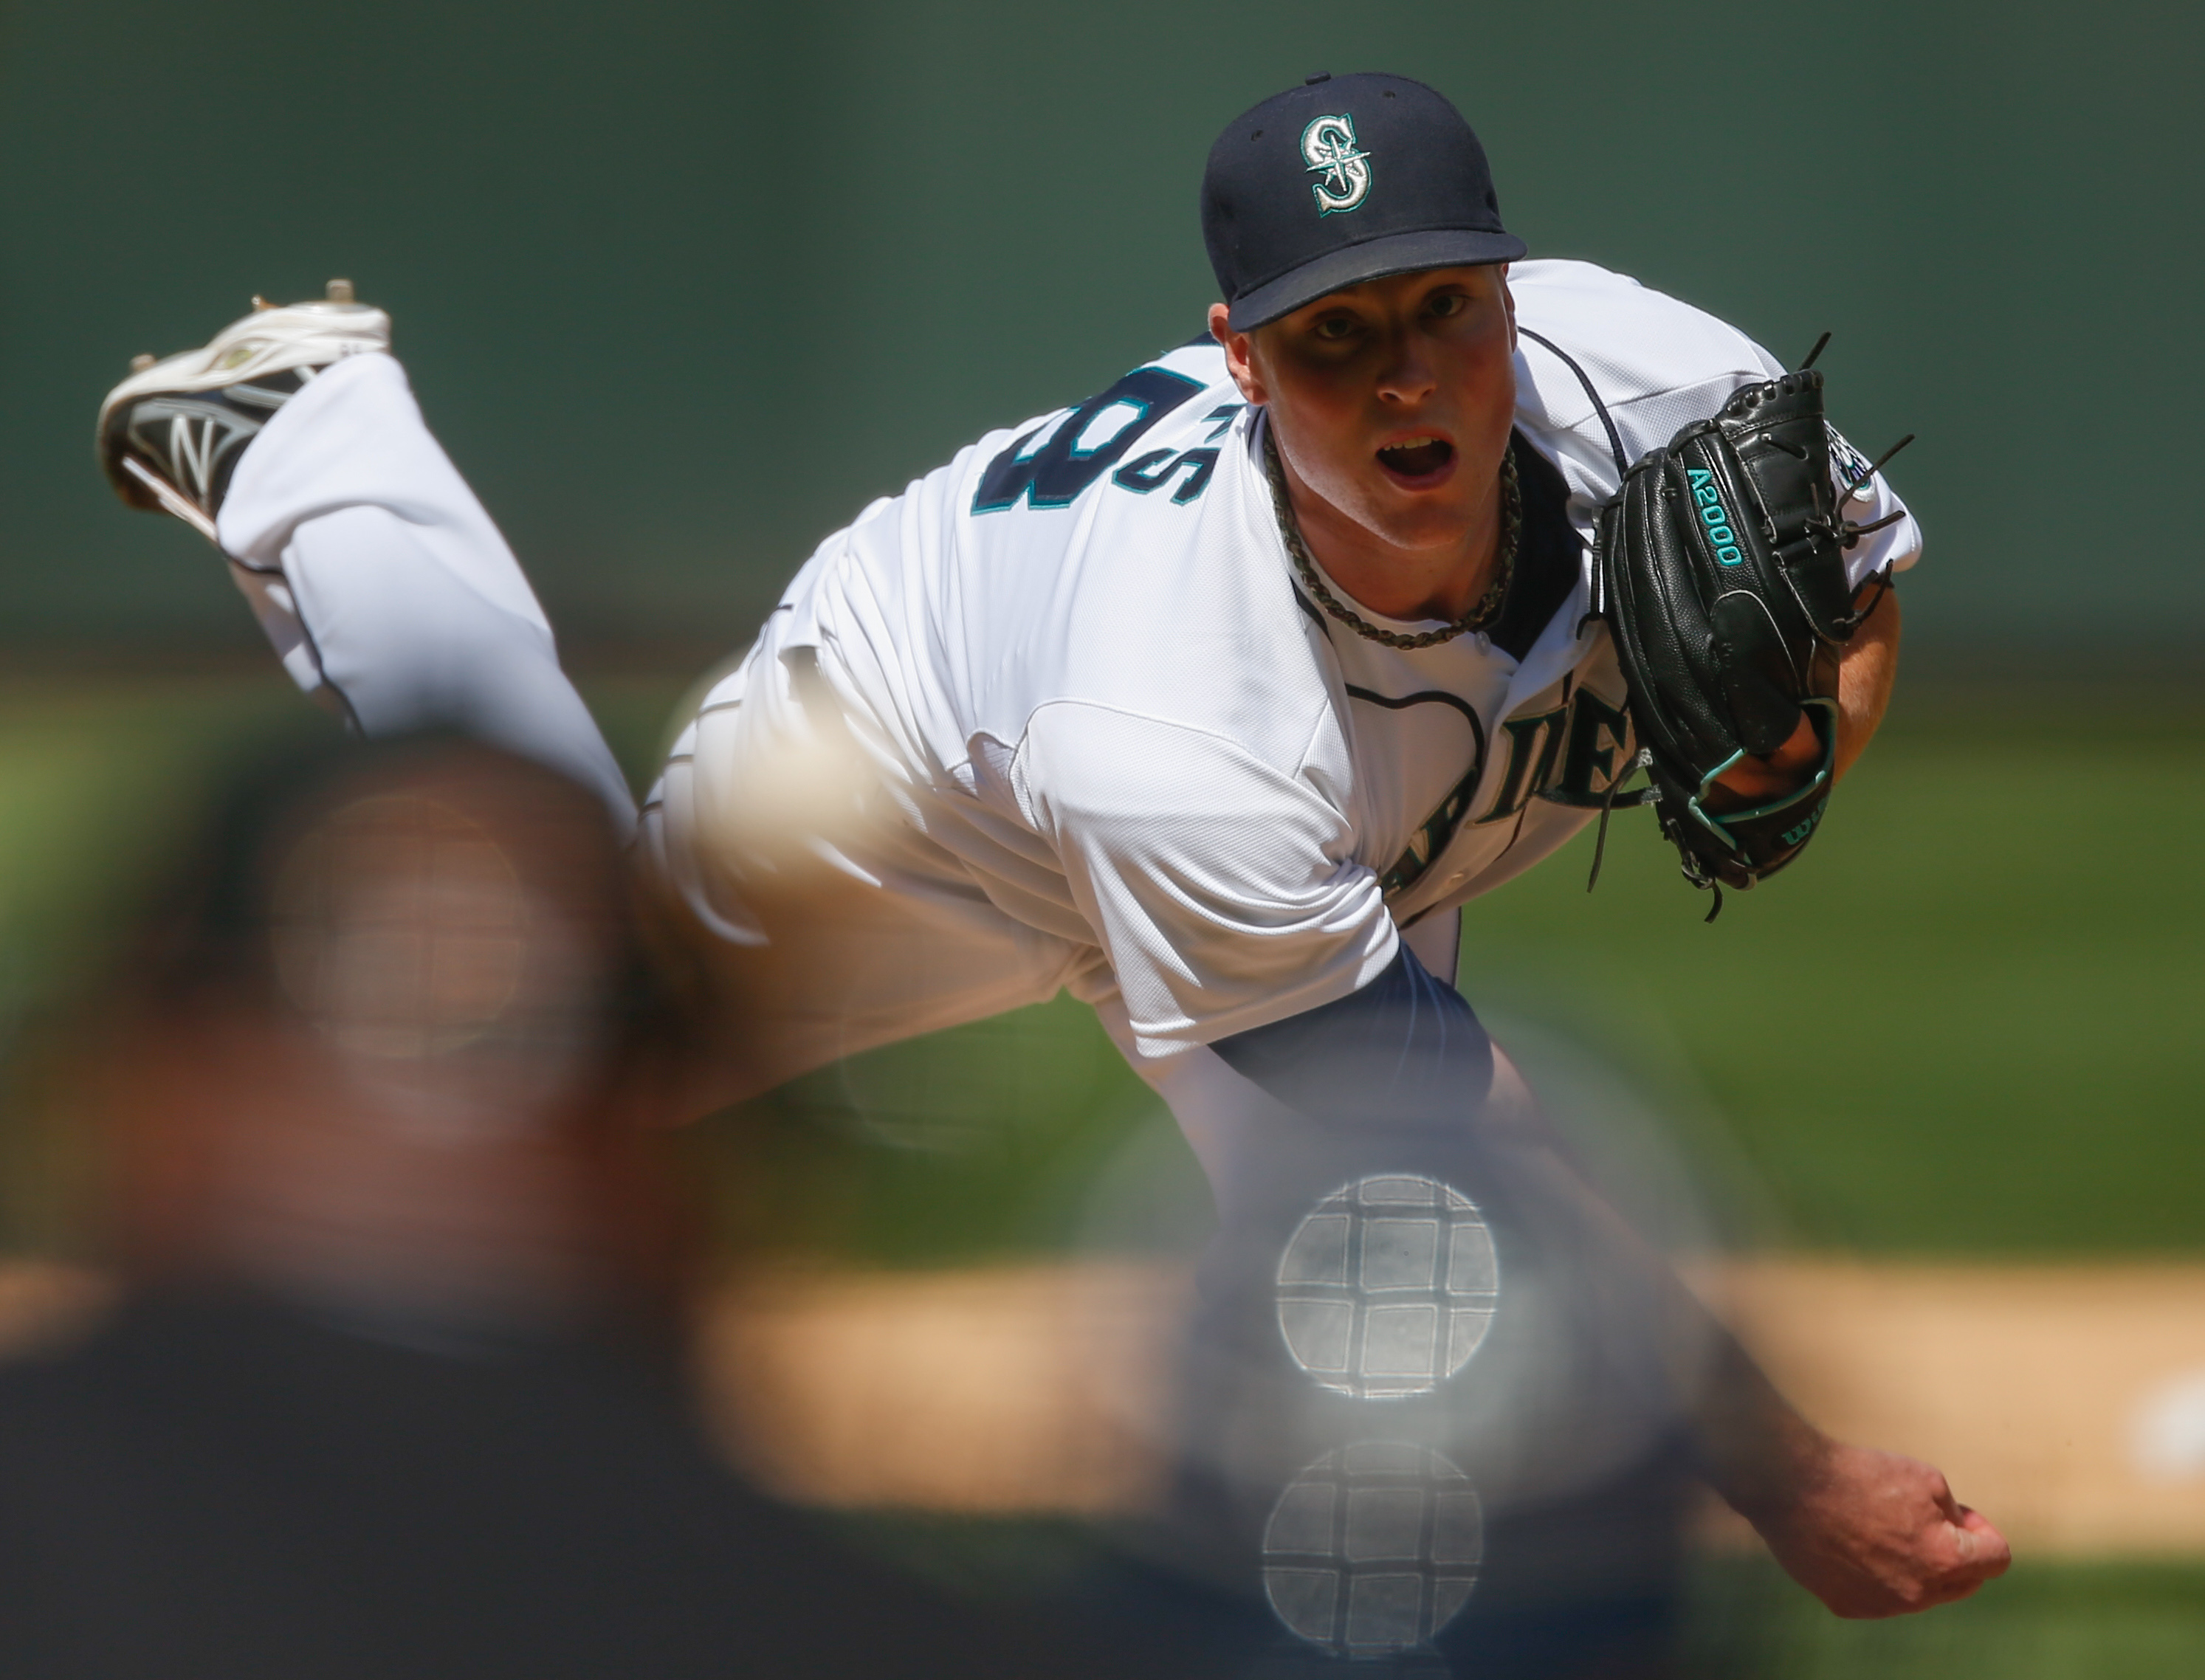 SEATTLE, WA - JUNE 08: Relief pitcher Carter Capps #58 of the Seattle Mariners pitches against the New York Yankees at Safeco Field on June 8, 2013 in Seattle, Washington. (Photo by Otto Greule Jr/Getty Images)